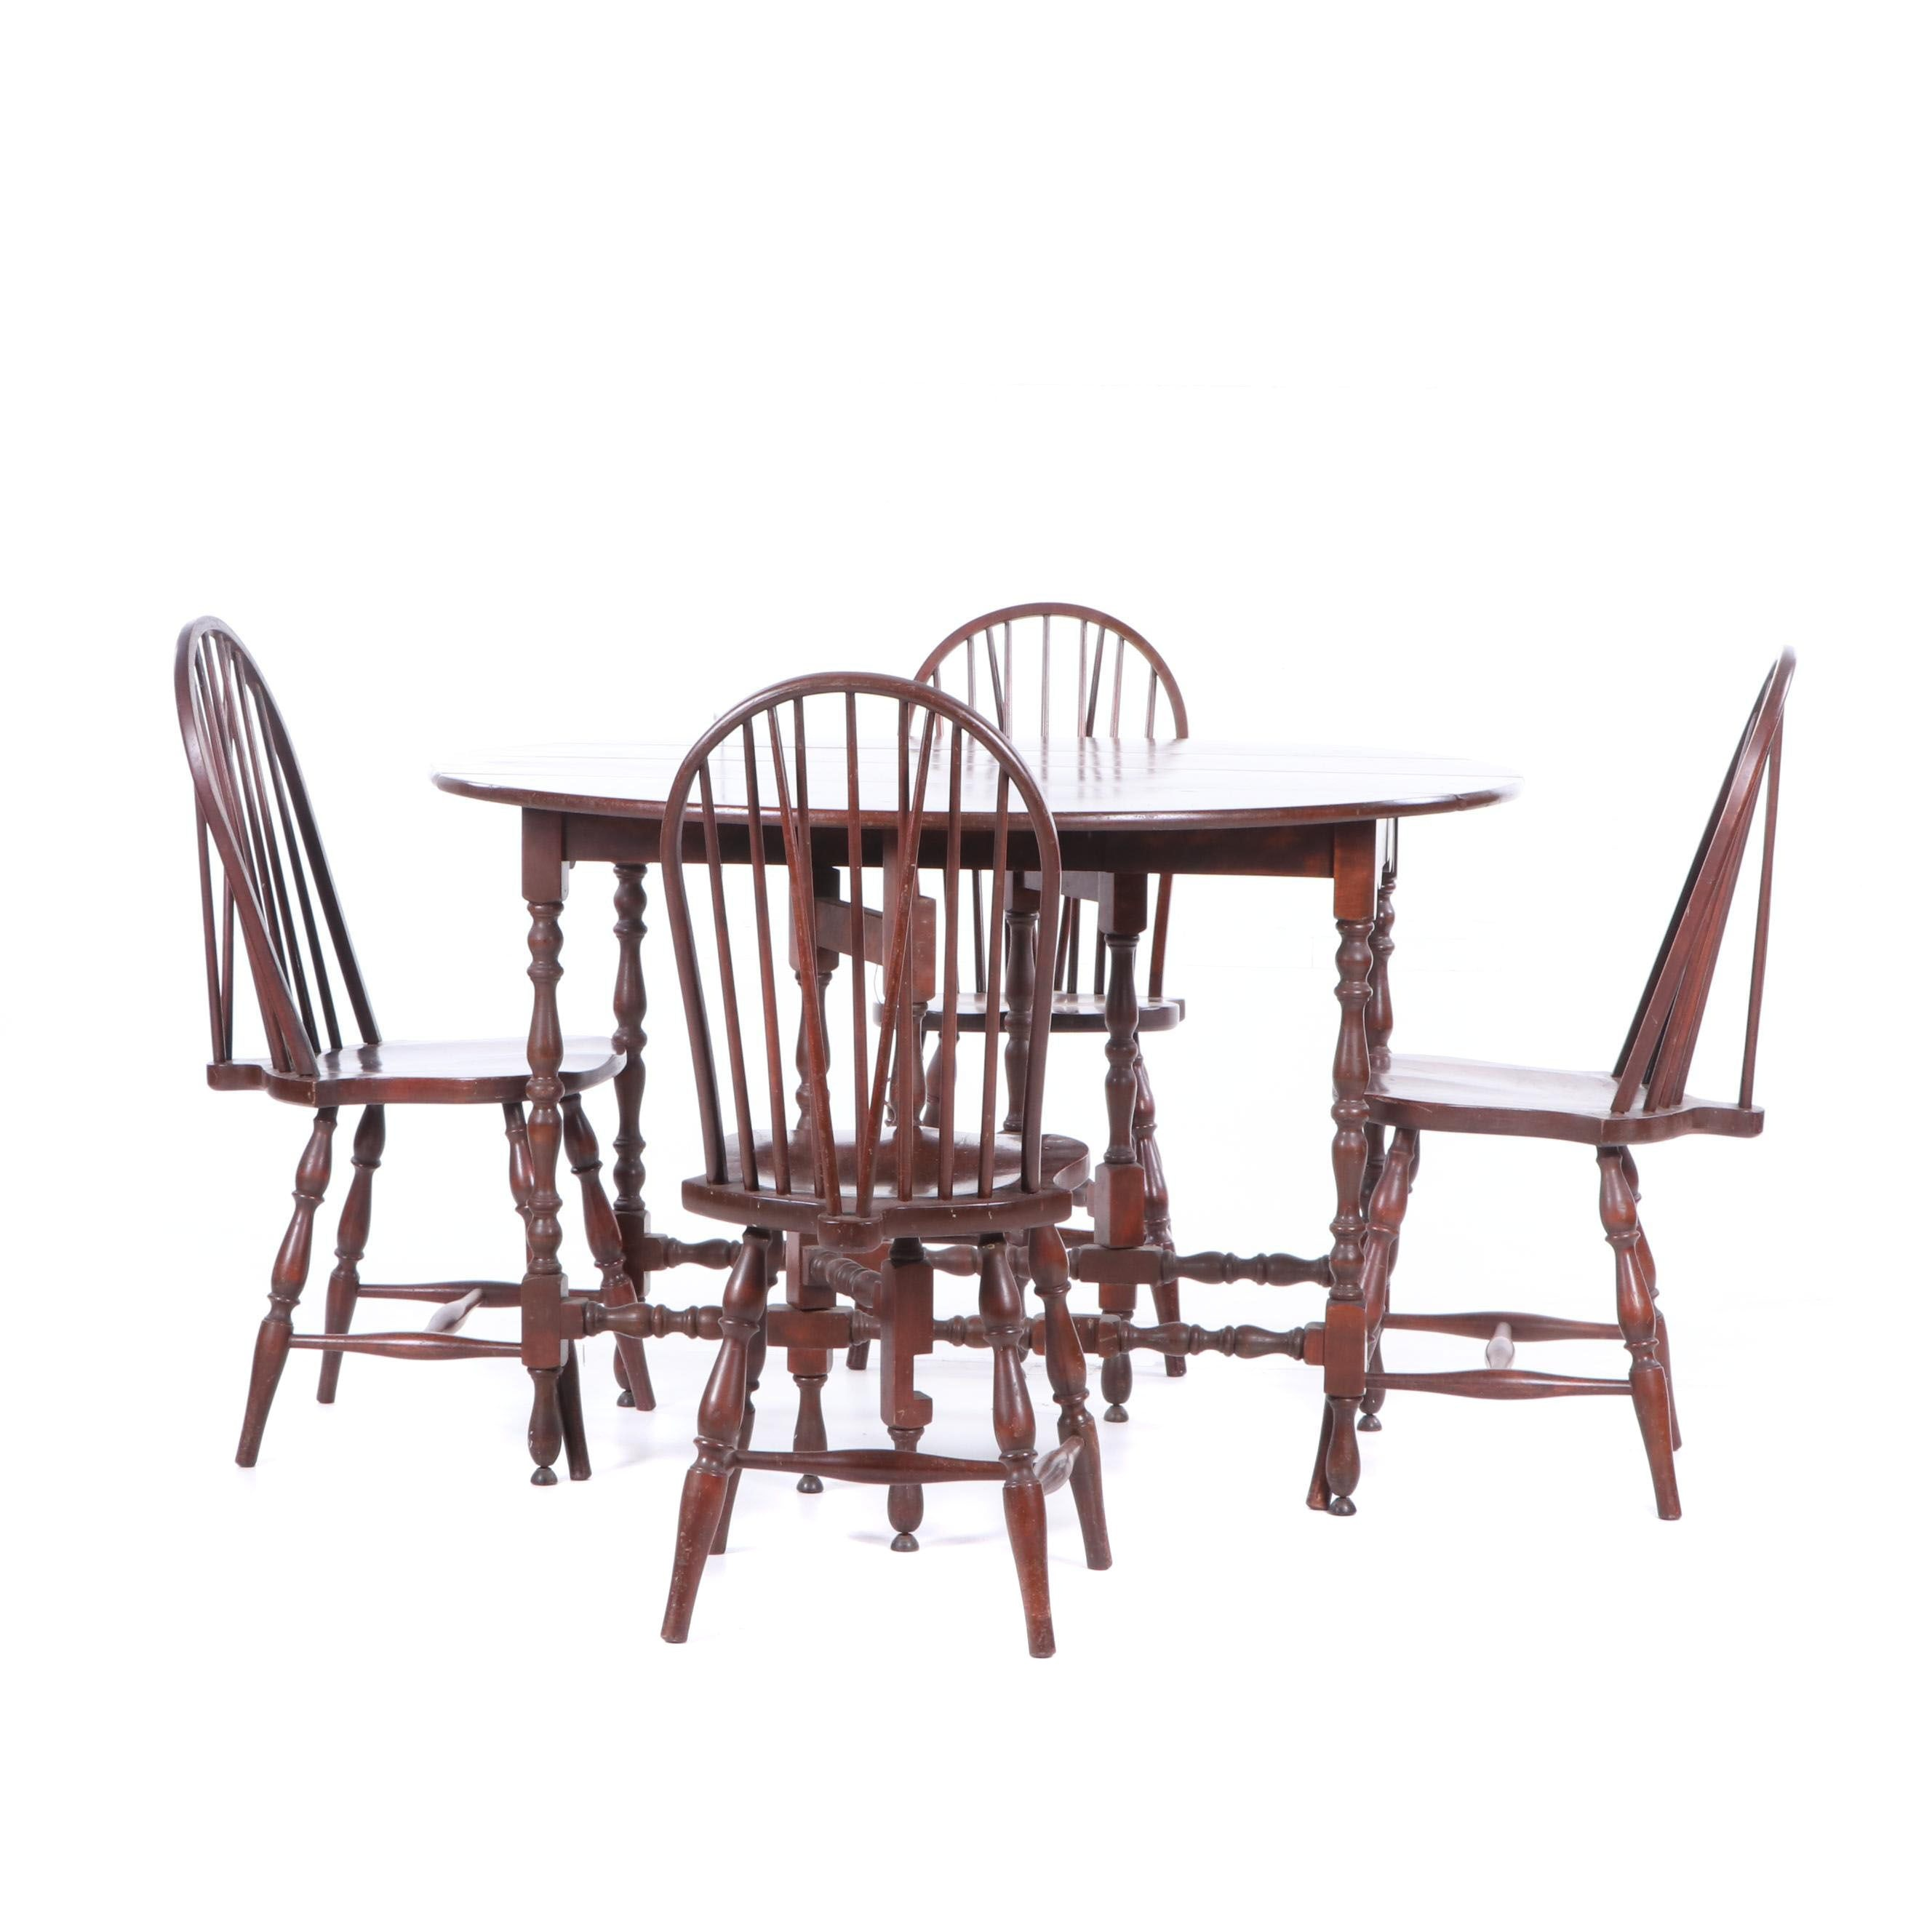 Colonial Style Mahogany Gate Leg Table with Brace Back Side Chairs, Early 20th